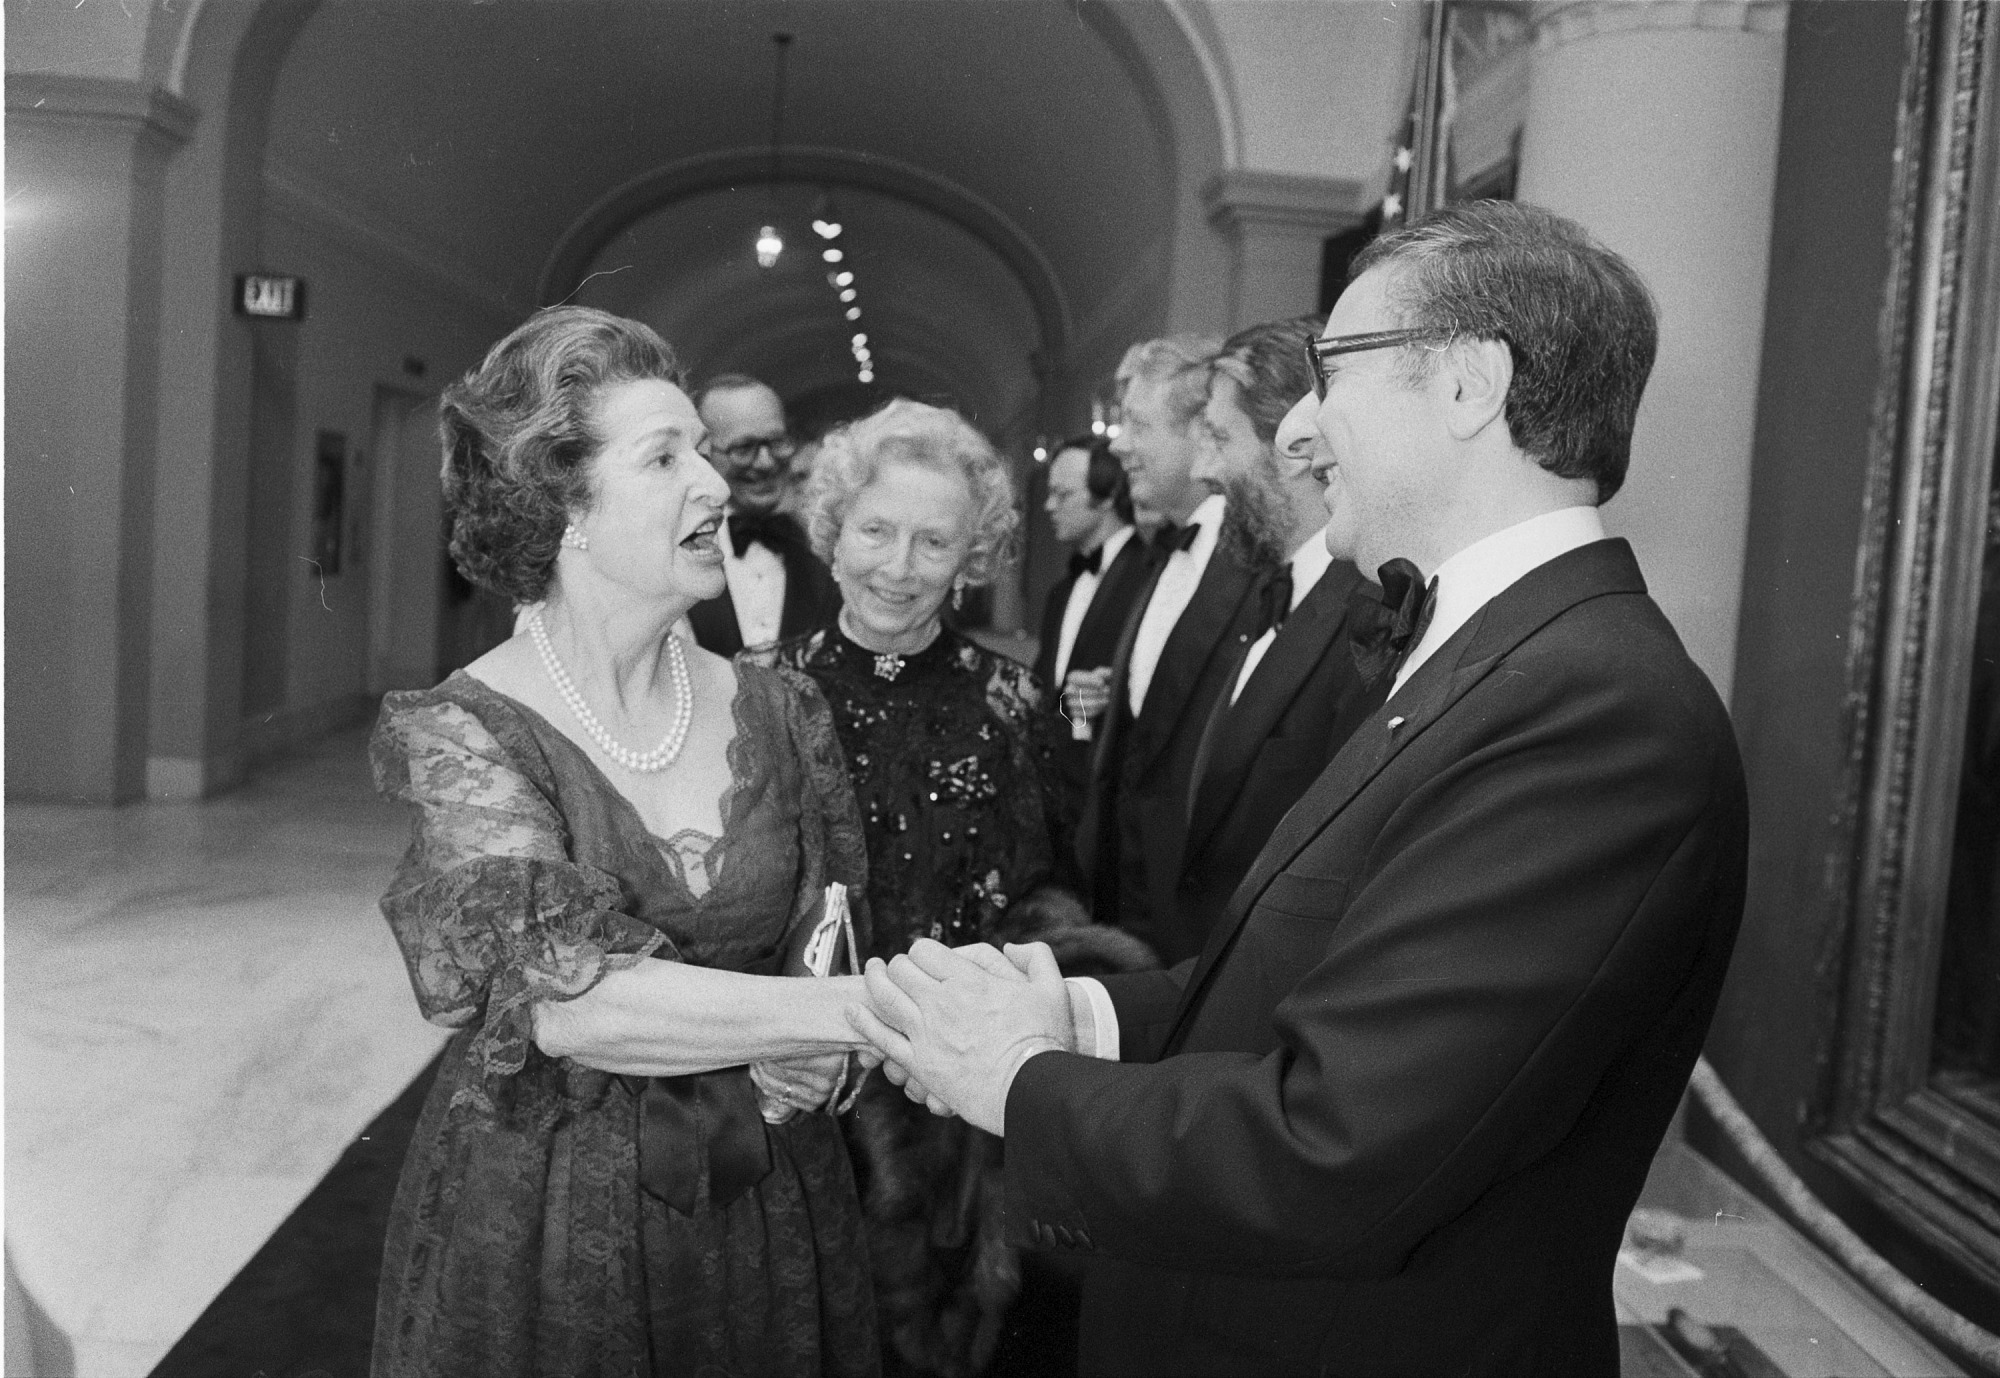 Marvin Sadik Greeting Lady Bird Johnson